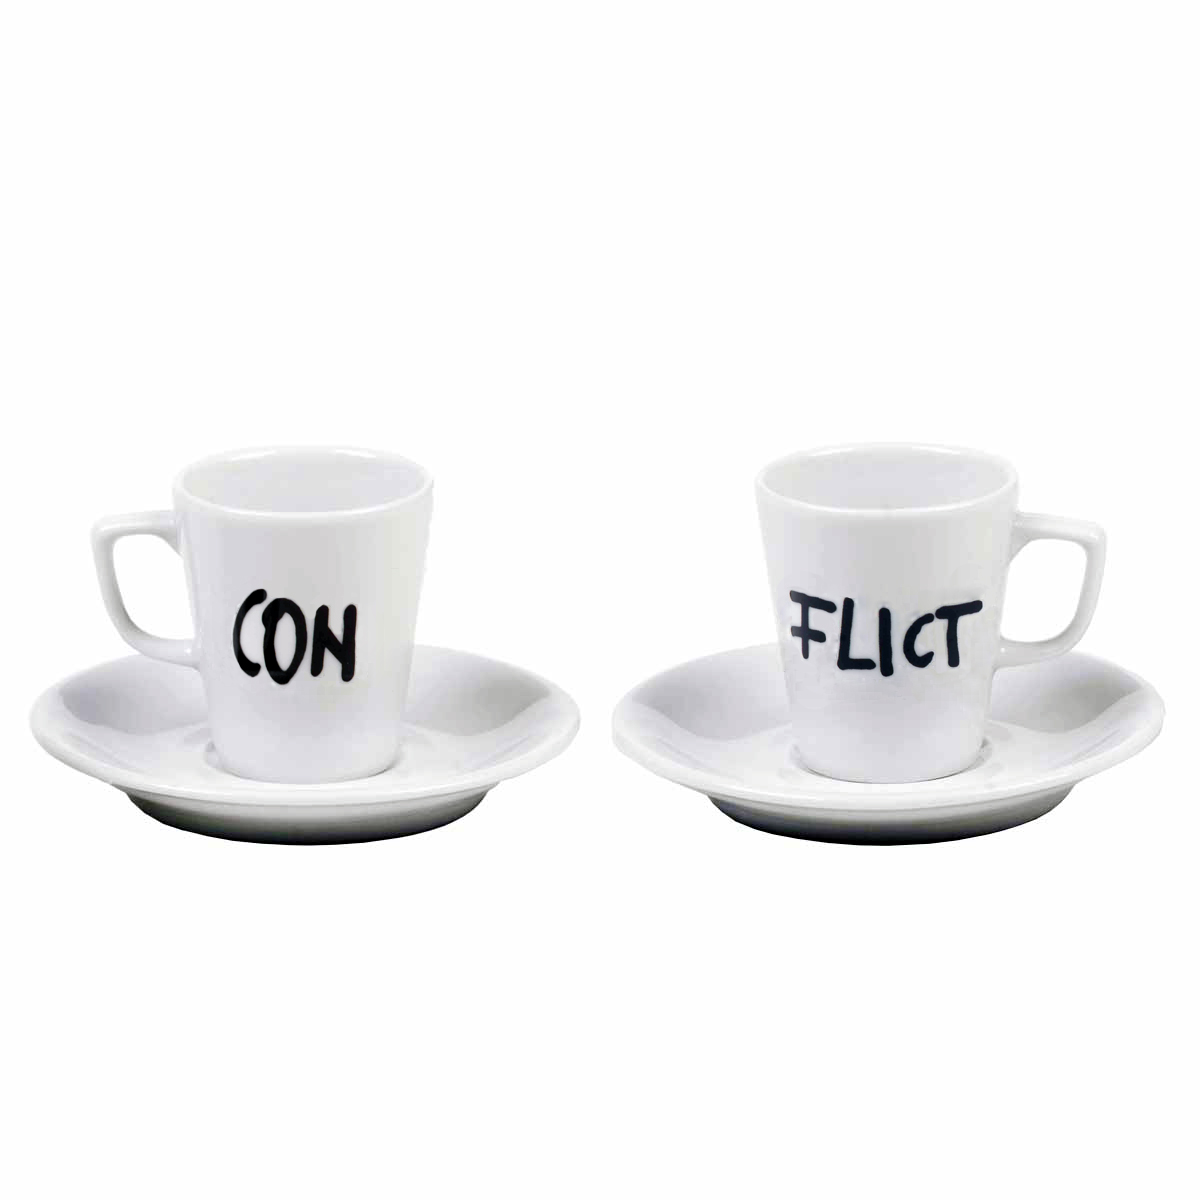 cups dialogues